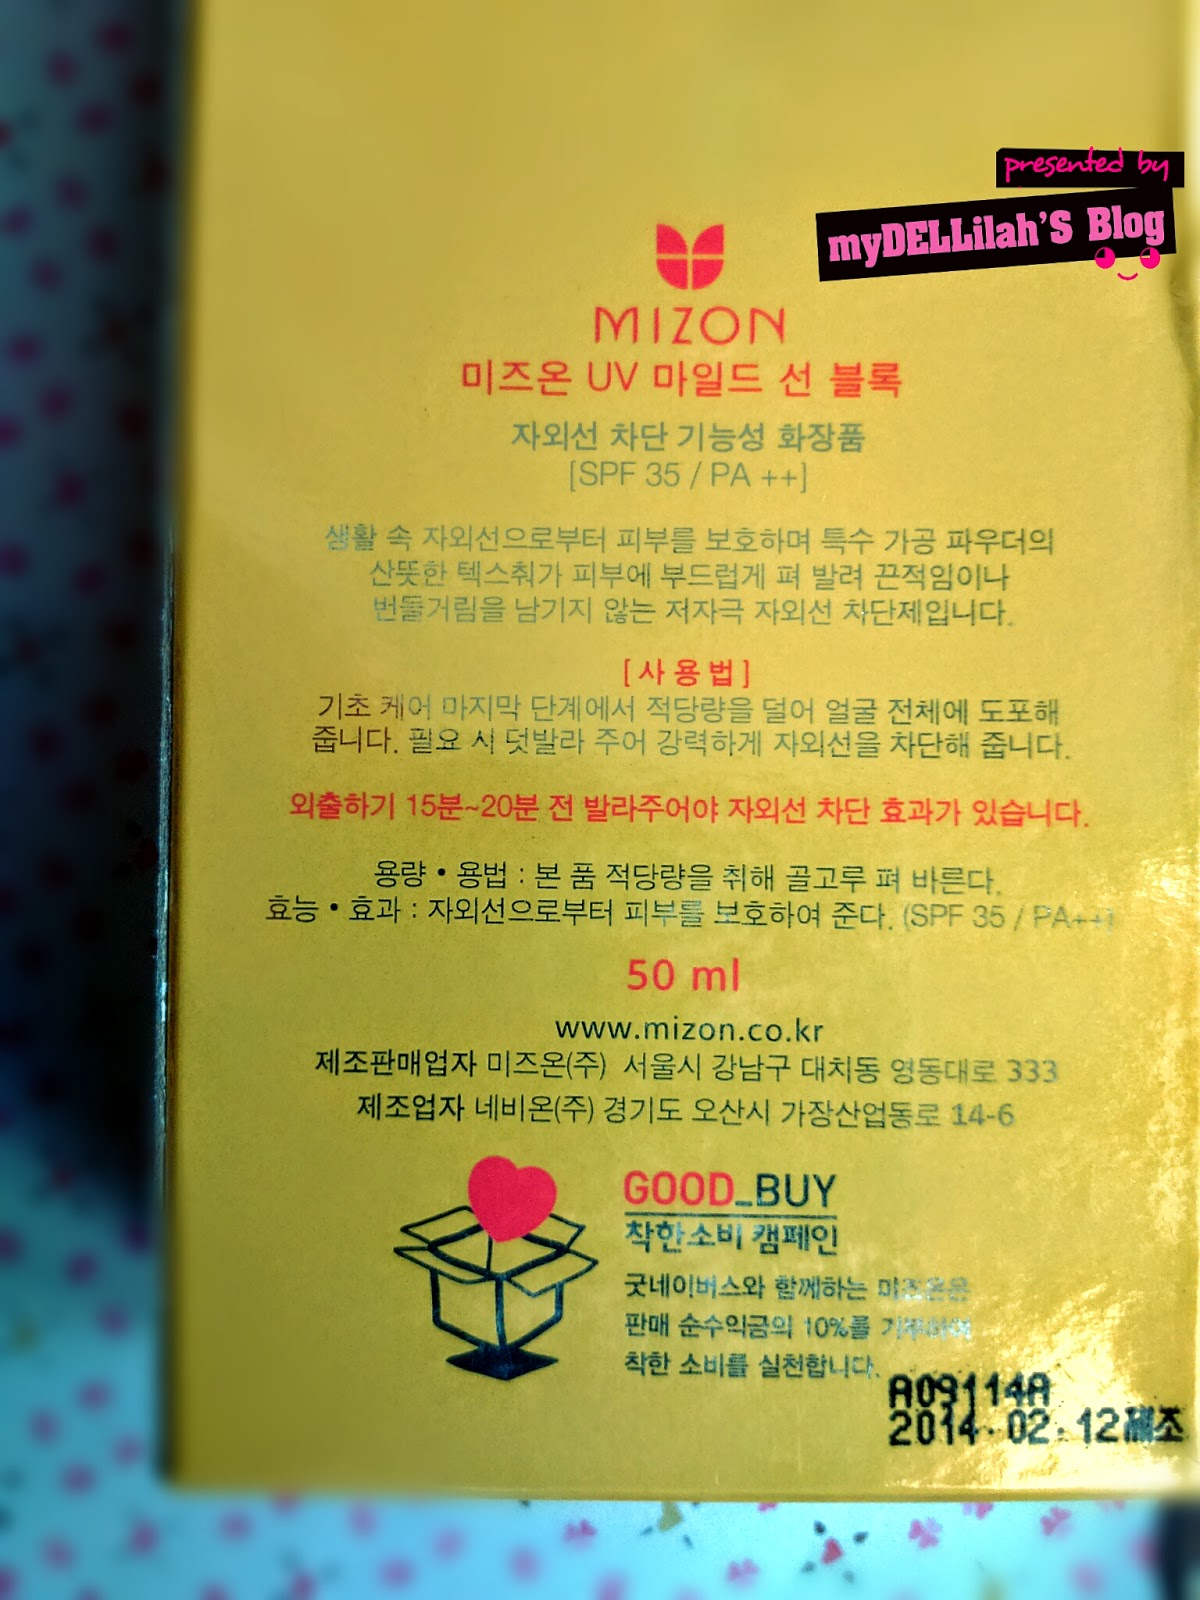 Mizon Sunscreen UV Mld Sun Block REVIEW